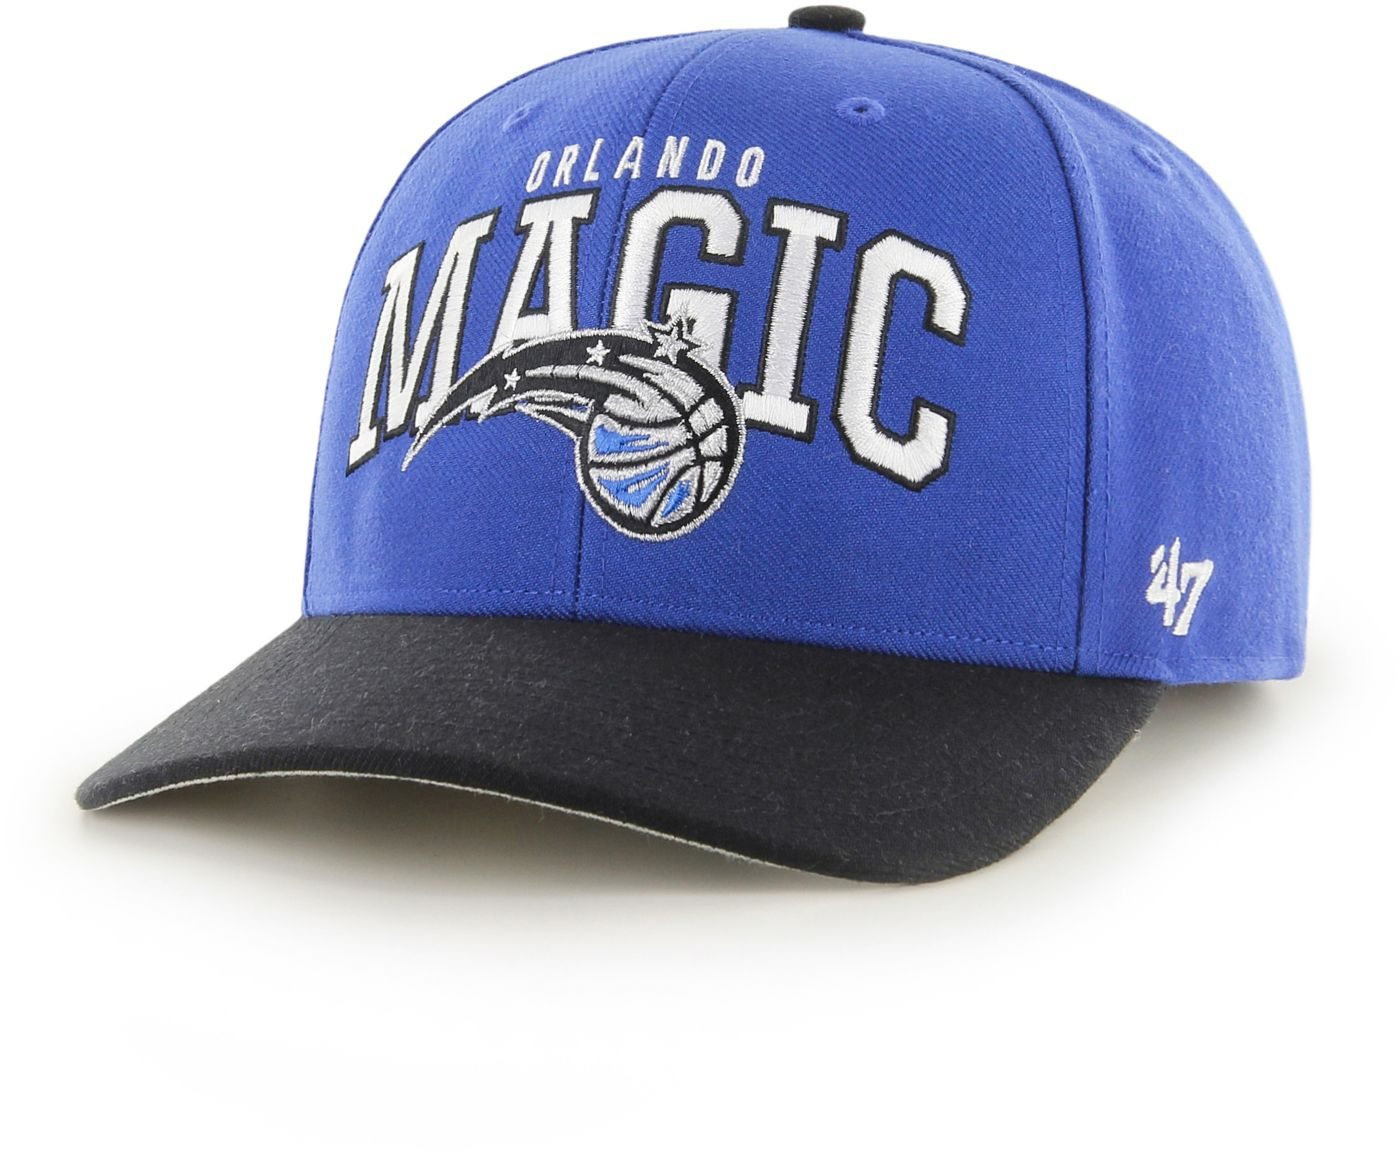 47 Men's Orlando Magic MVP Adjustable Hat